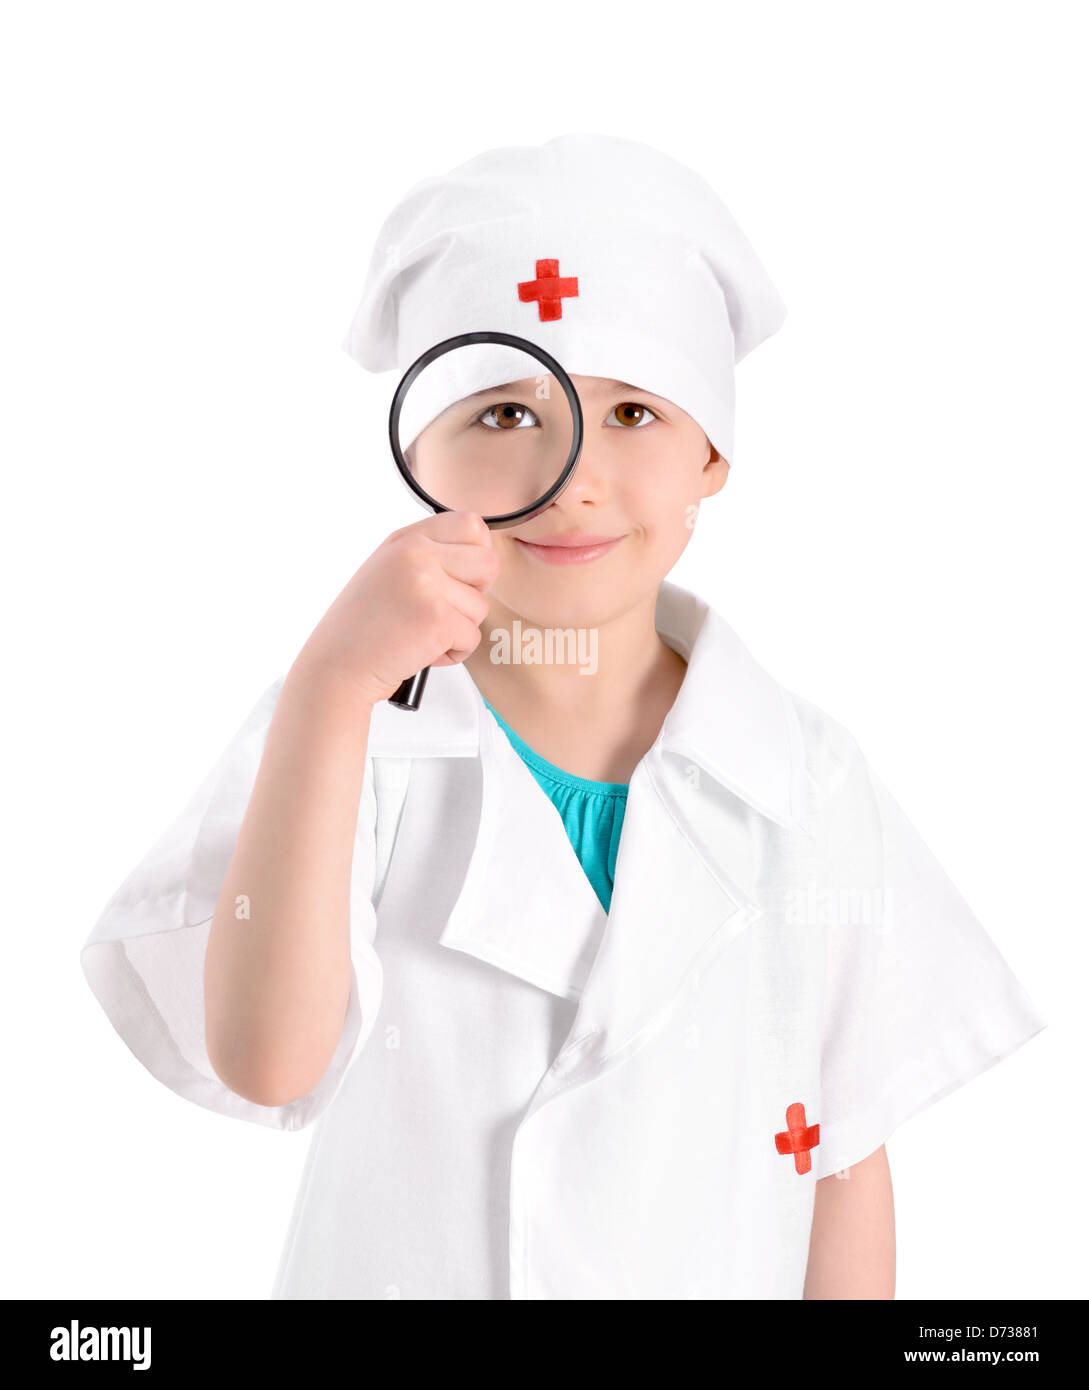 Portrait of a smiling little girl wearing as a nurse on white uniform and holding in right-hand a magnifying glass - Stock Image